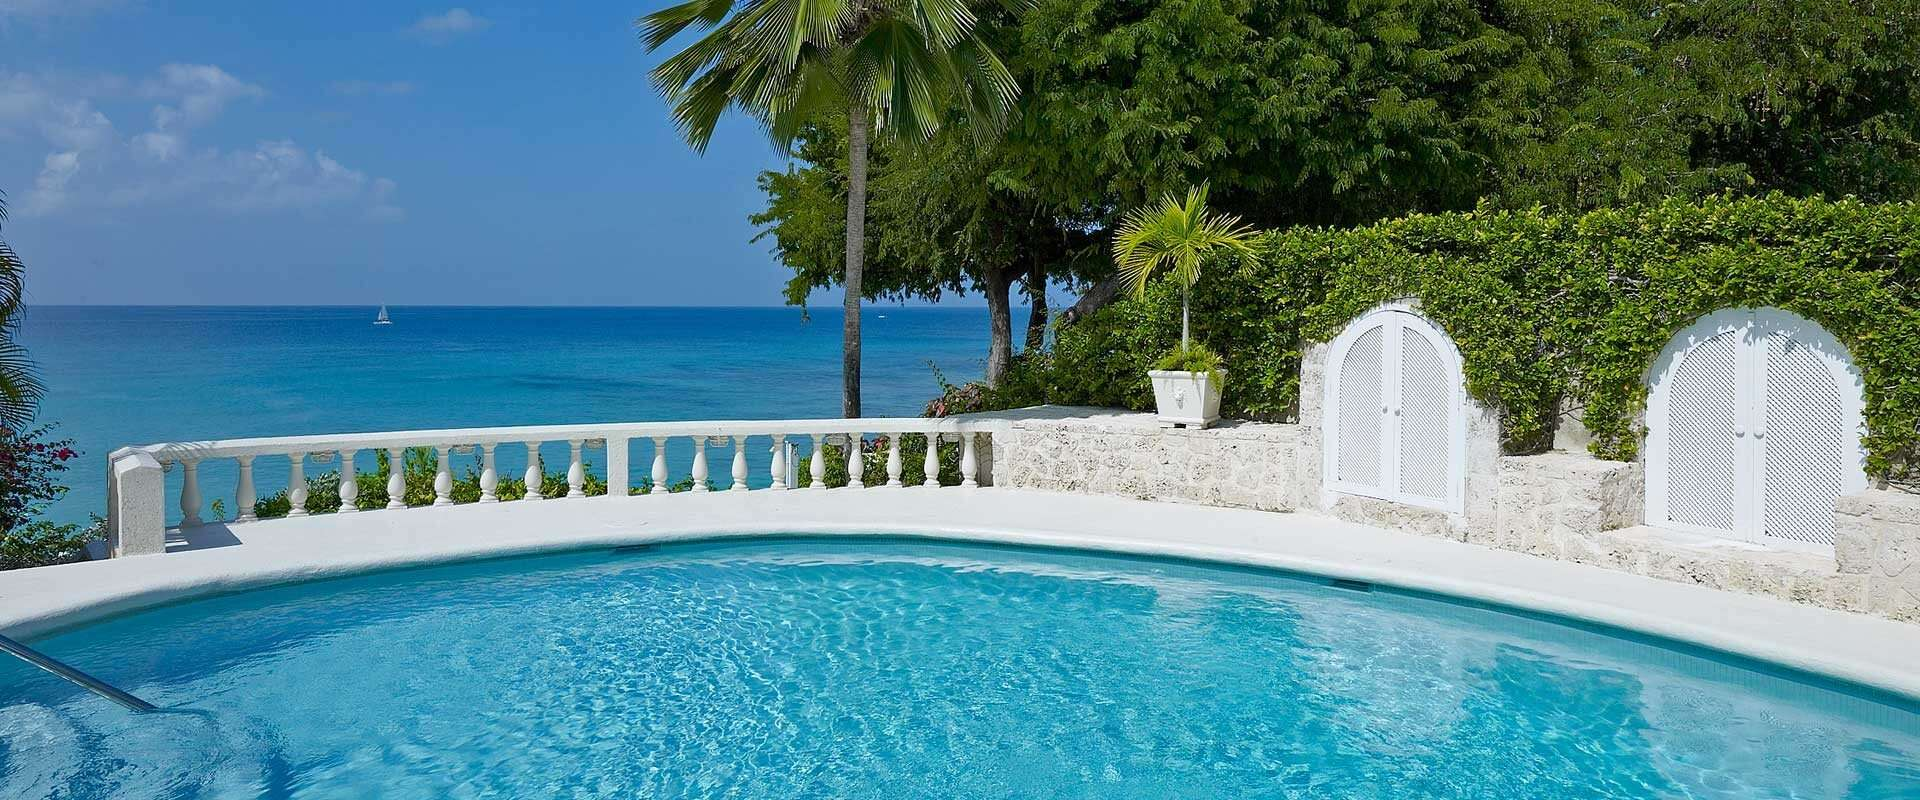 Luxury villa rentals caribbean - Barbados - St james - The garden - Whitegates - Image 1/13